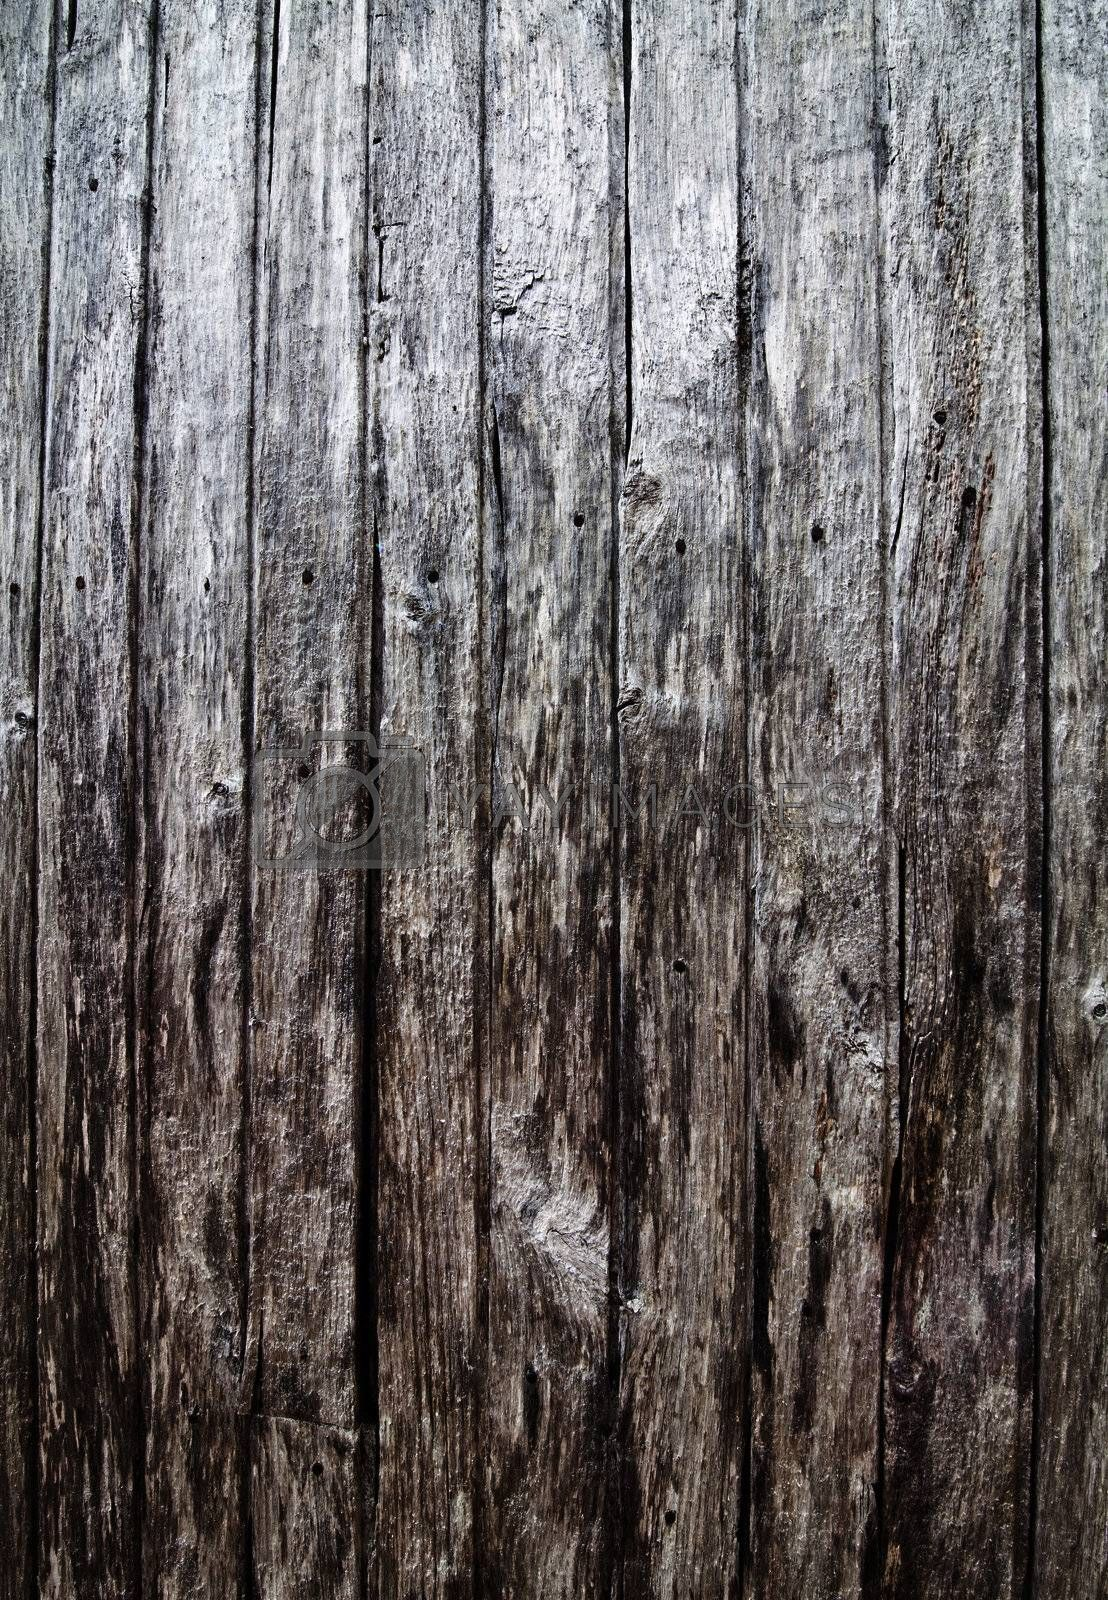 Old Barn Wood Texture Royalty Free